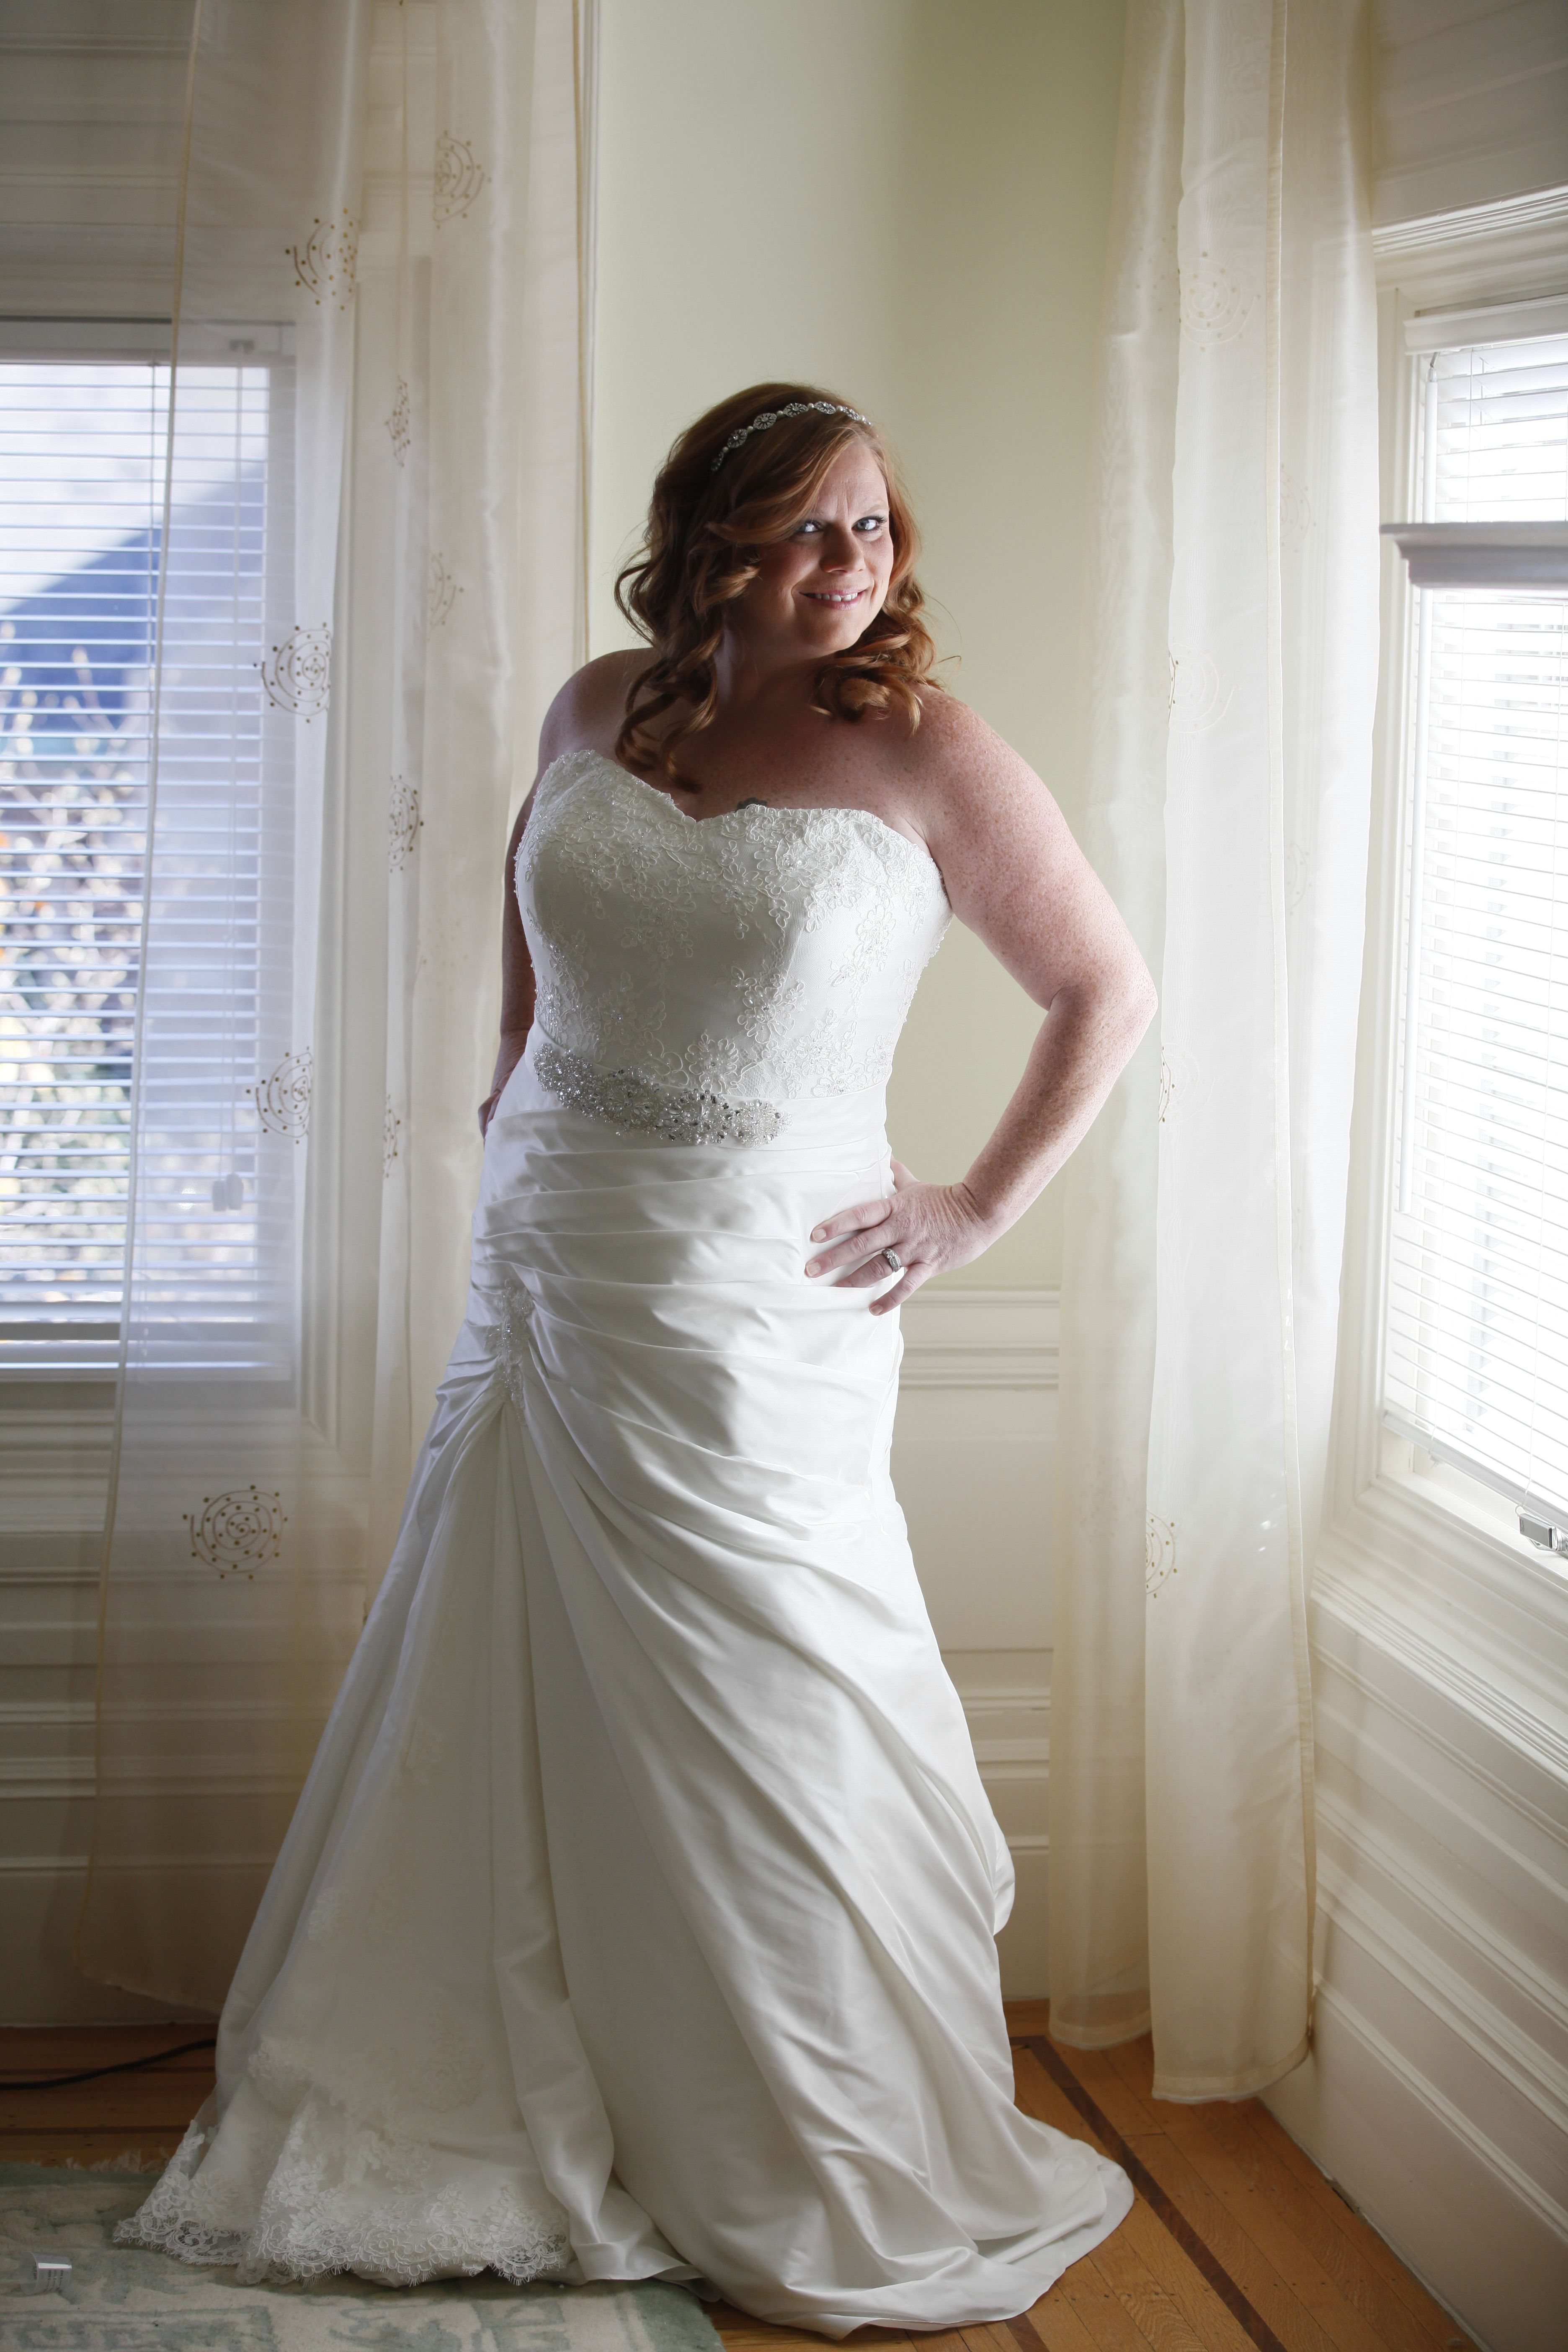 Luxe Bridal Couture Minneapolis Mn Wedding Gowns Plus Sizes Bridesmaid Dresses Mother Of The Bri Plus Size Wedding Gowns Wedding Dresses Plus Size Wedding [ 5616 x 3744 Pixel ]